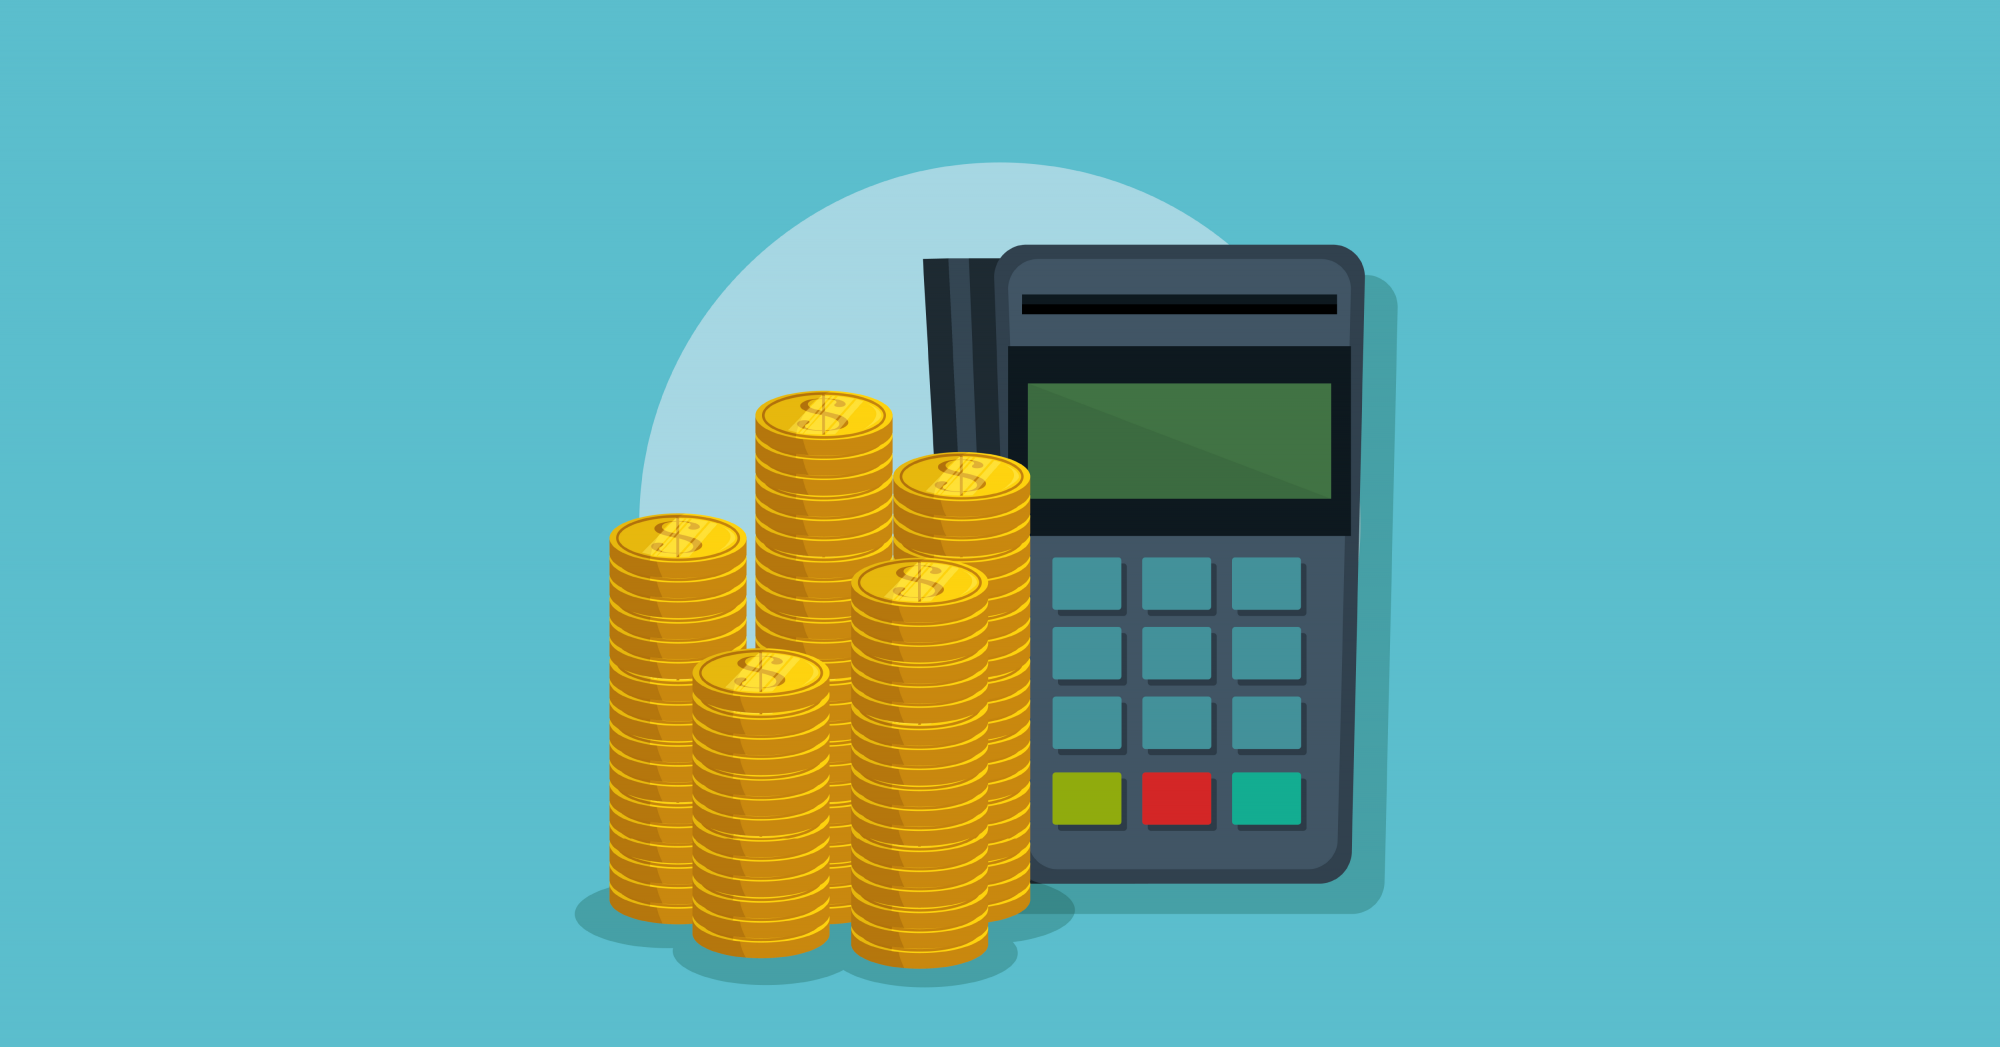 Coins and calculator illustration